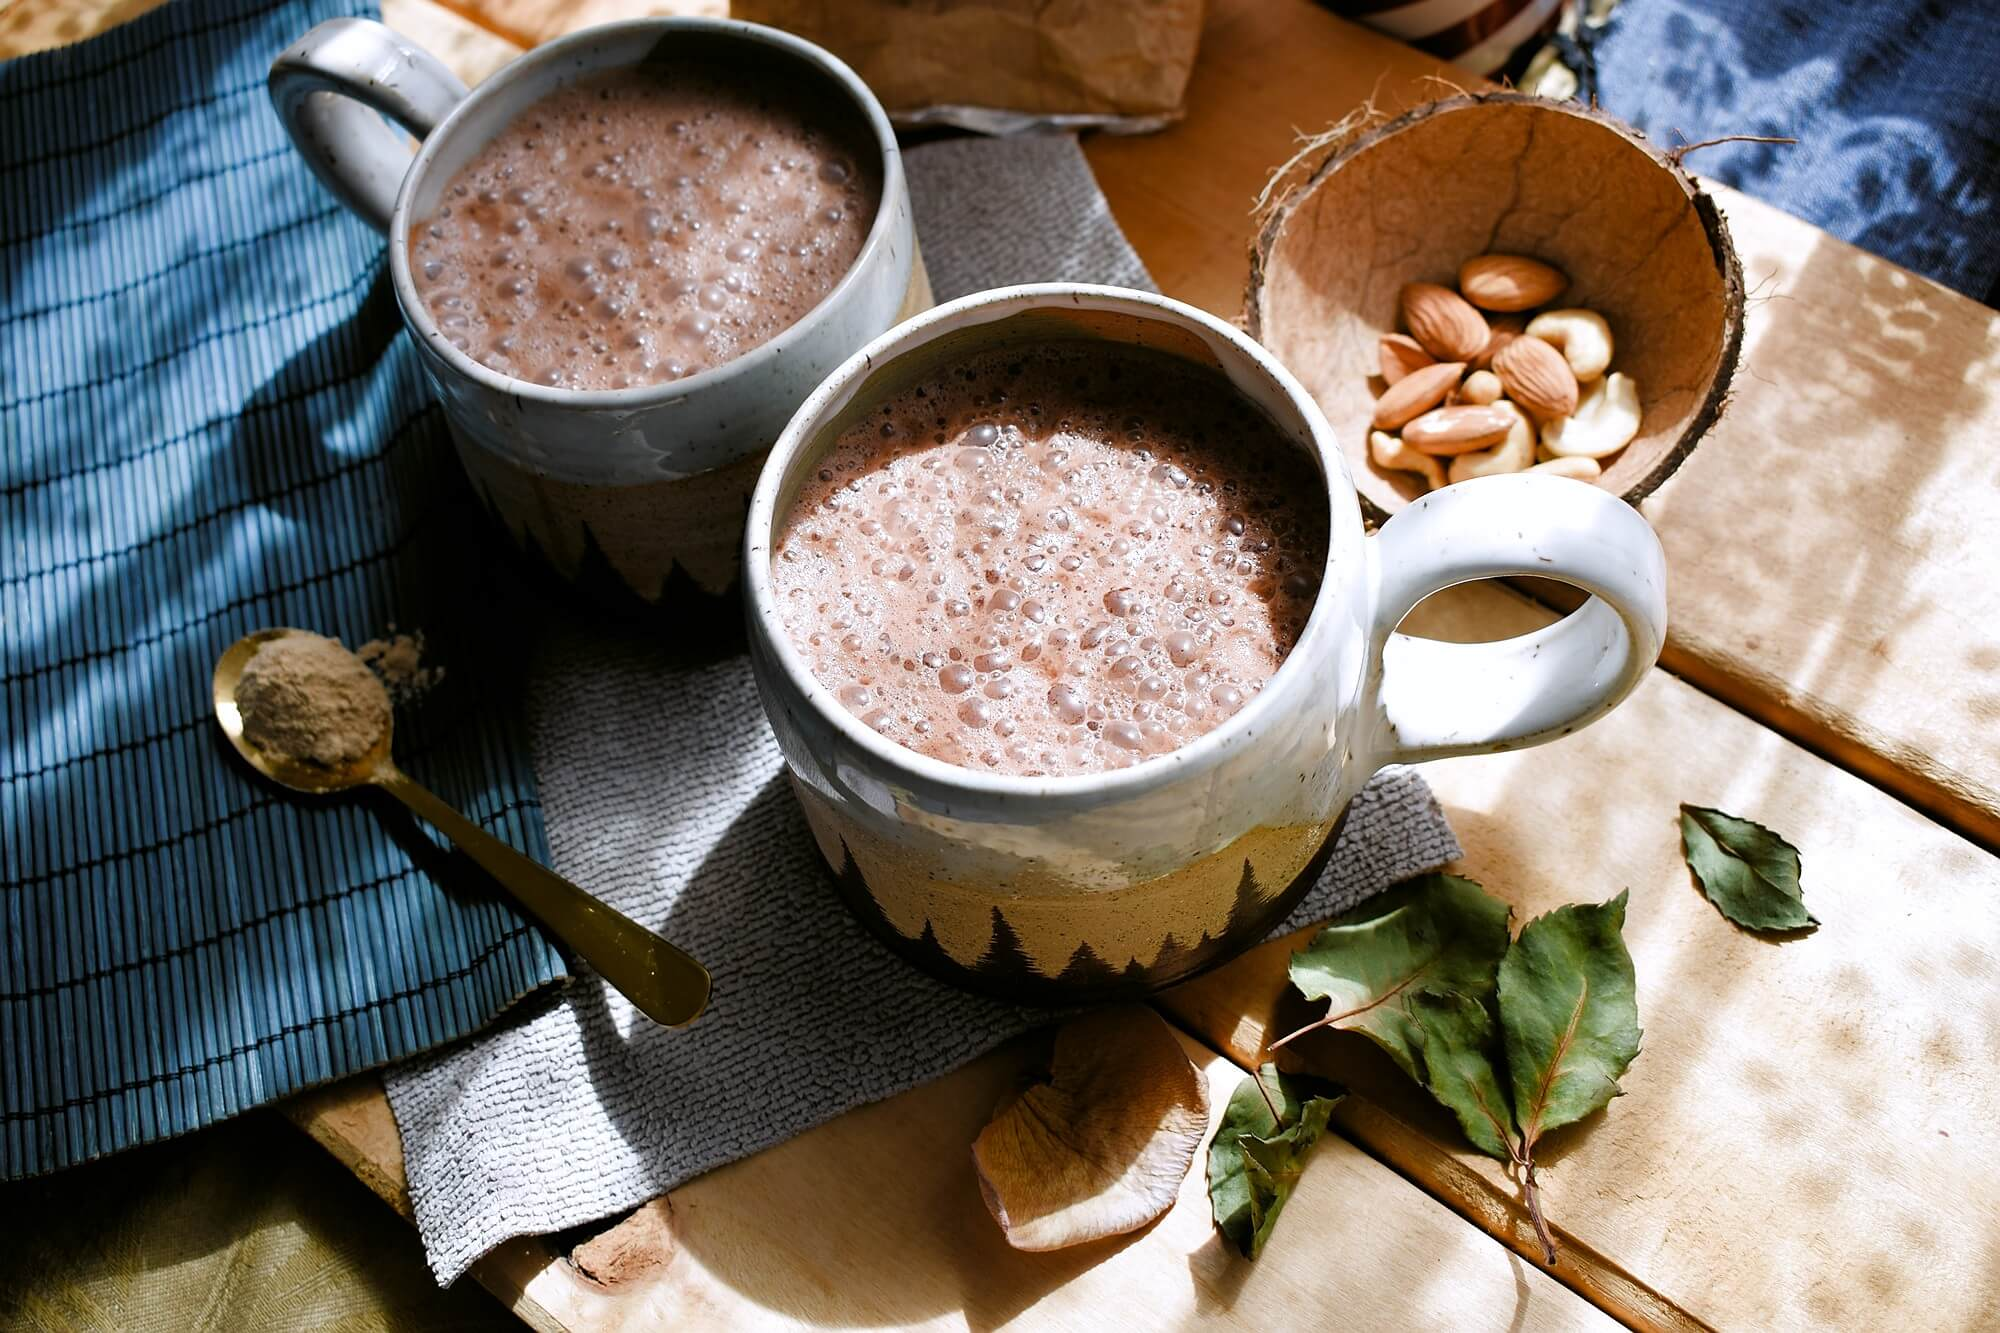 Caramel flavored Cocoa with Maca, sweetened with dates [vegan]